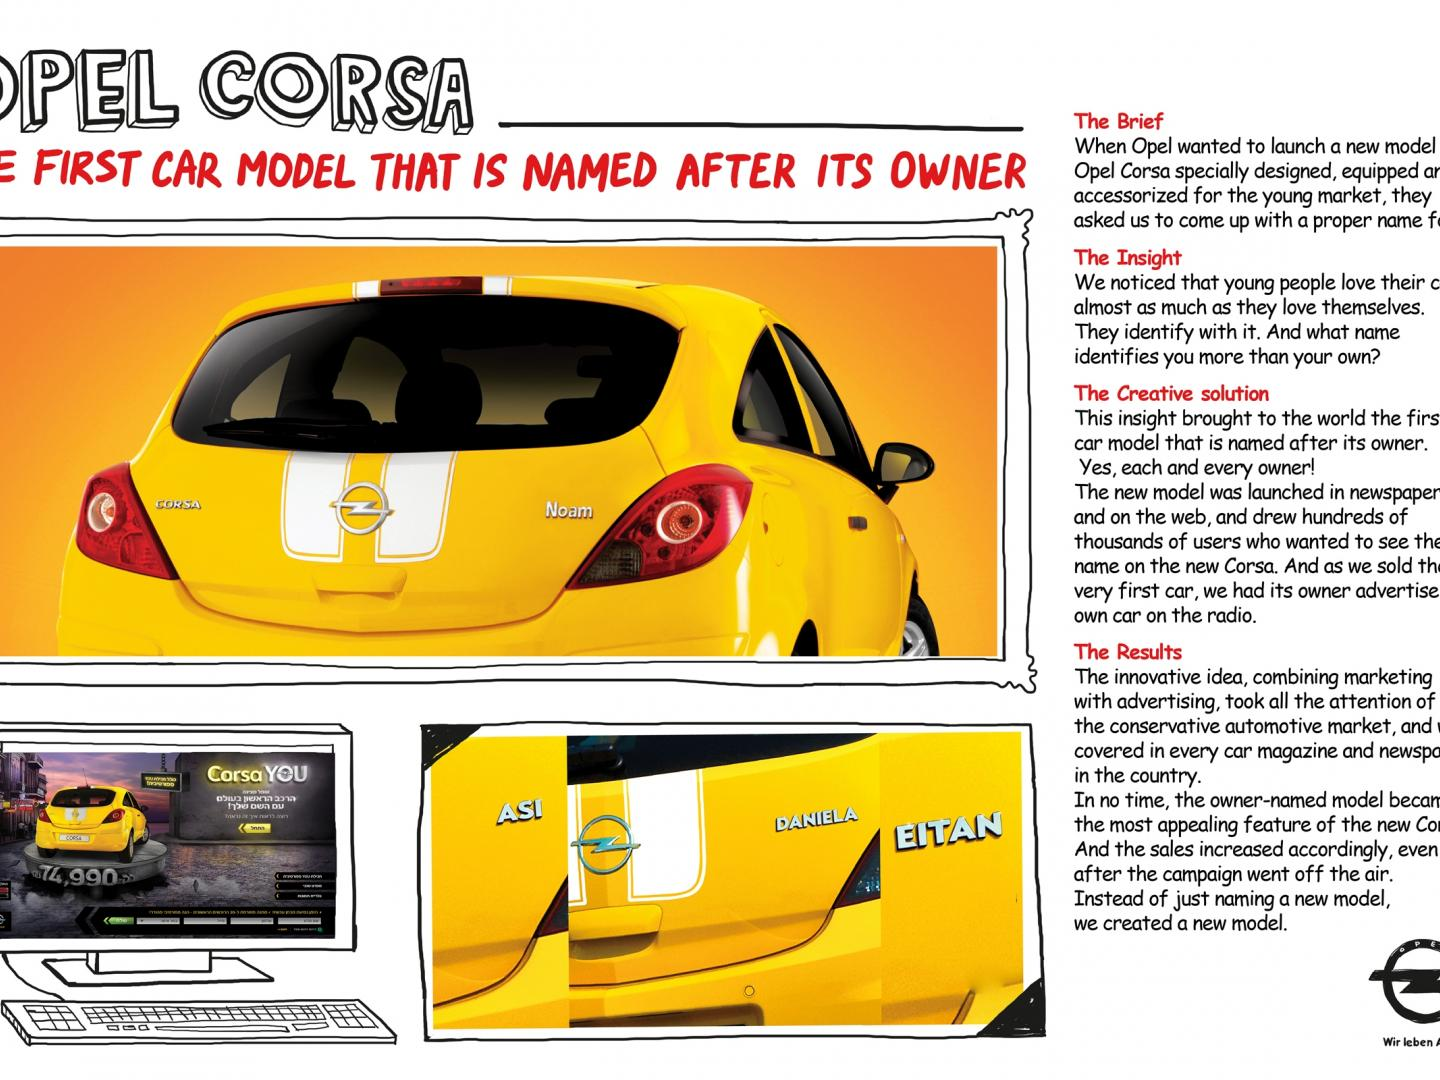 Opel Corsa __________ The first car model named after its owner Thumbnail